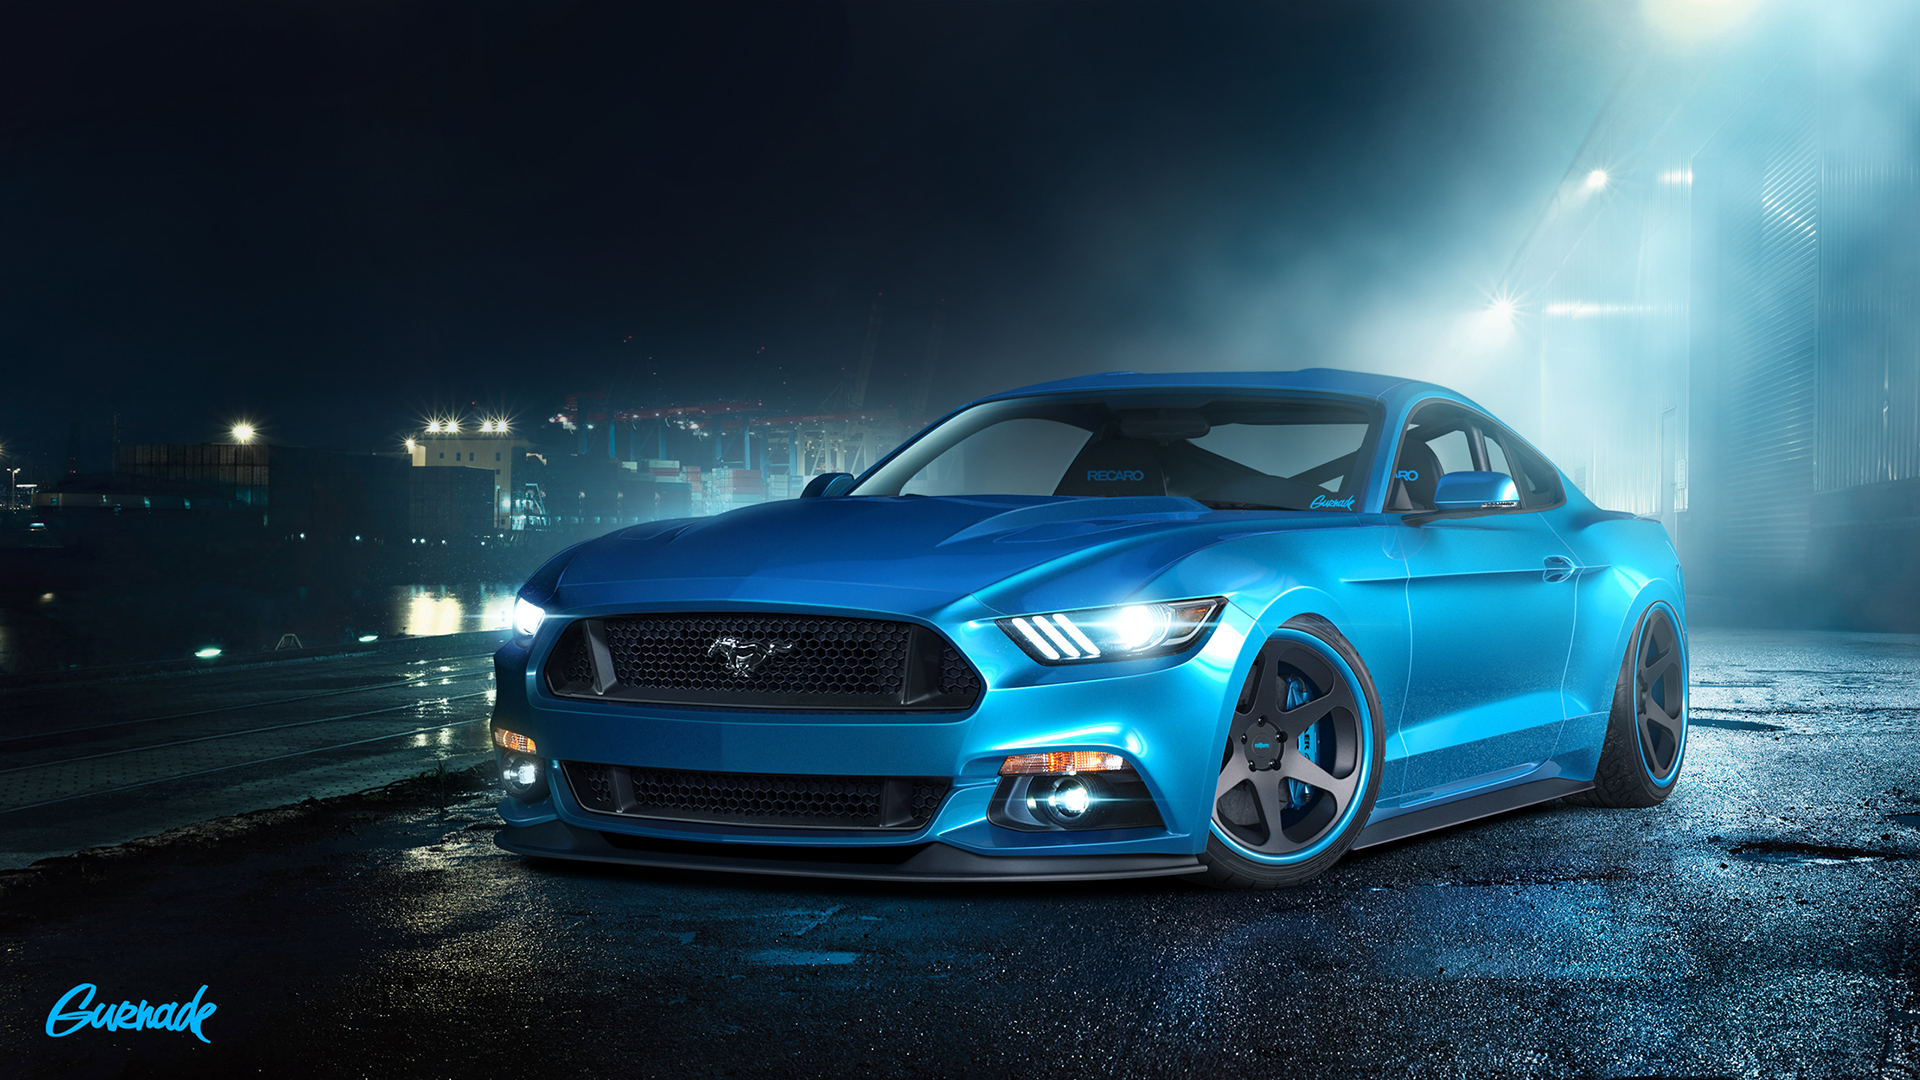 2016 Mustang HD Wallpaper  WallpaperSafari